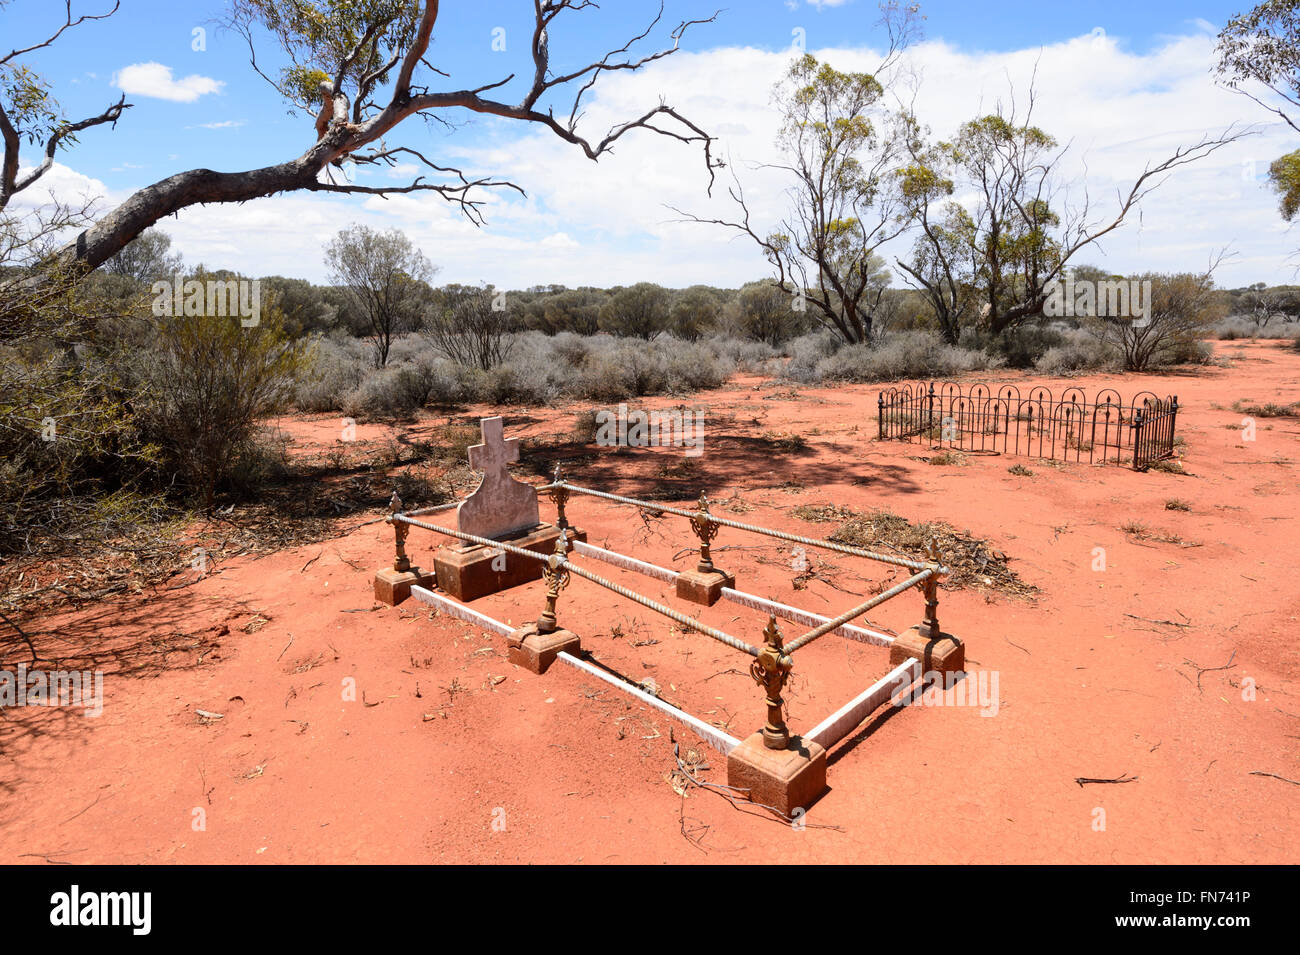 Lonely Outback pioneers' graves at Menzies Cemetery, Shire of Menzies, Western Australia, Australia - Stock Image